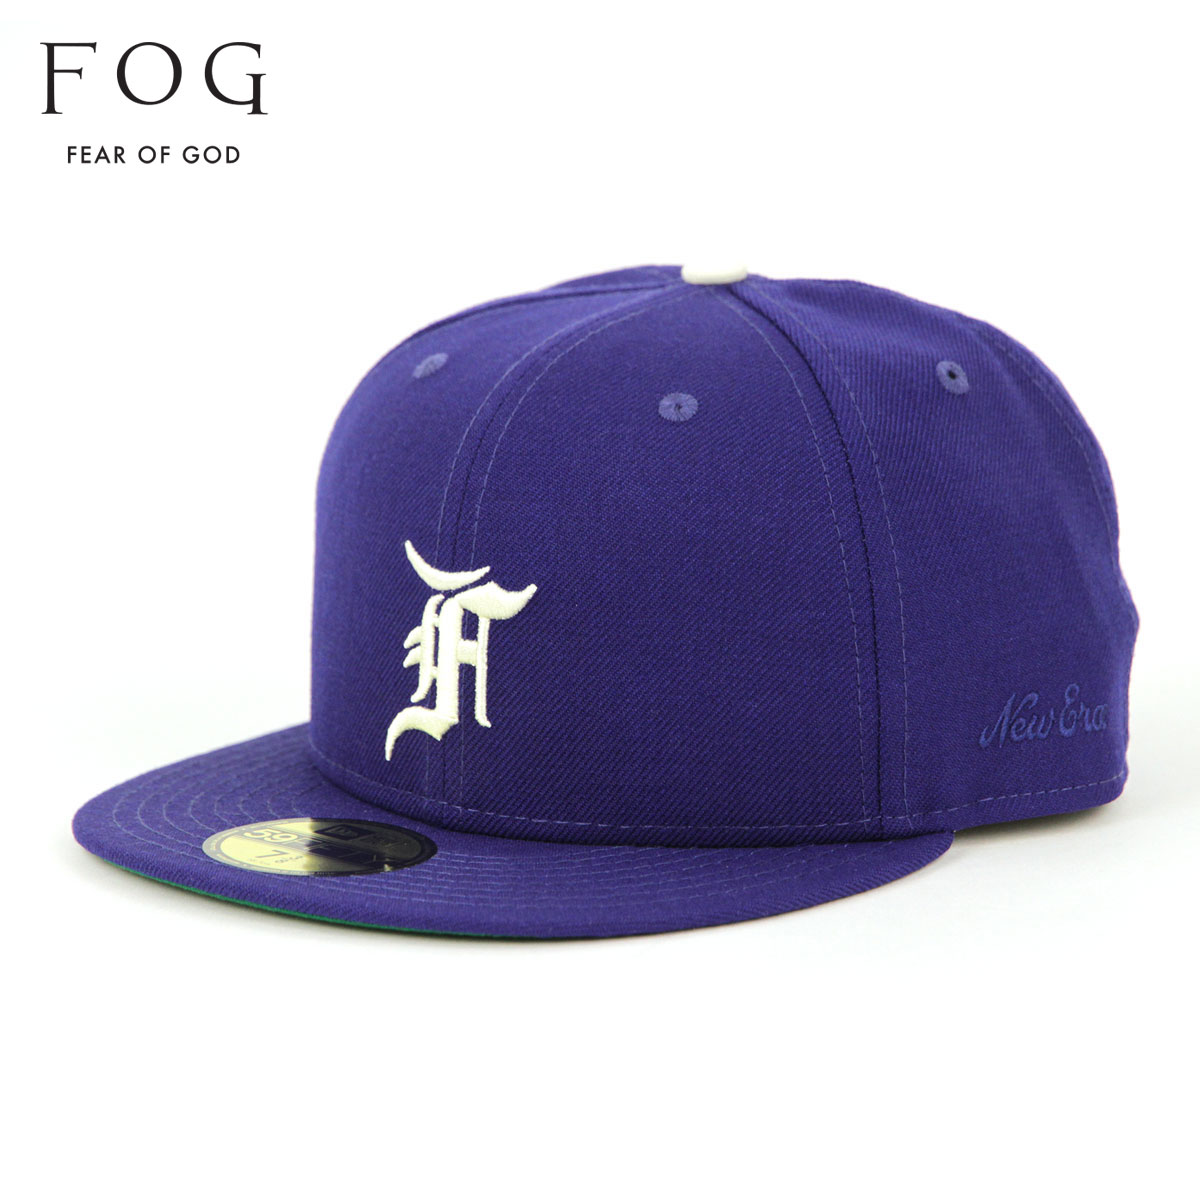 メンズ帽子, キャップ  FEAR OF GOD FOG - FEAR OF GOD ESSENTIALS X NEW ERA 59FIFTY FITTED HAT BLUE